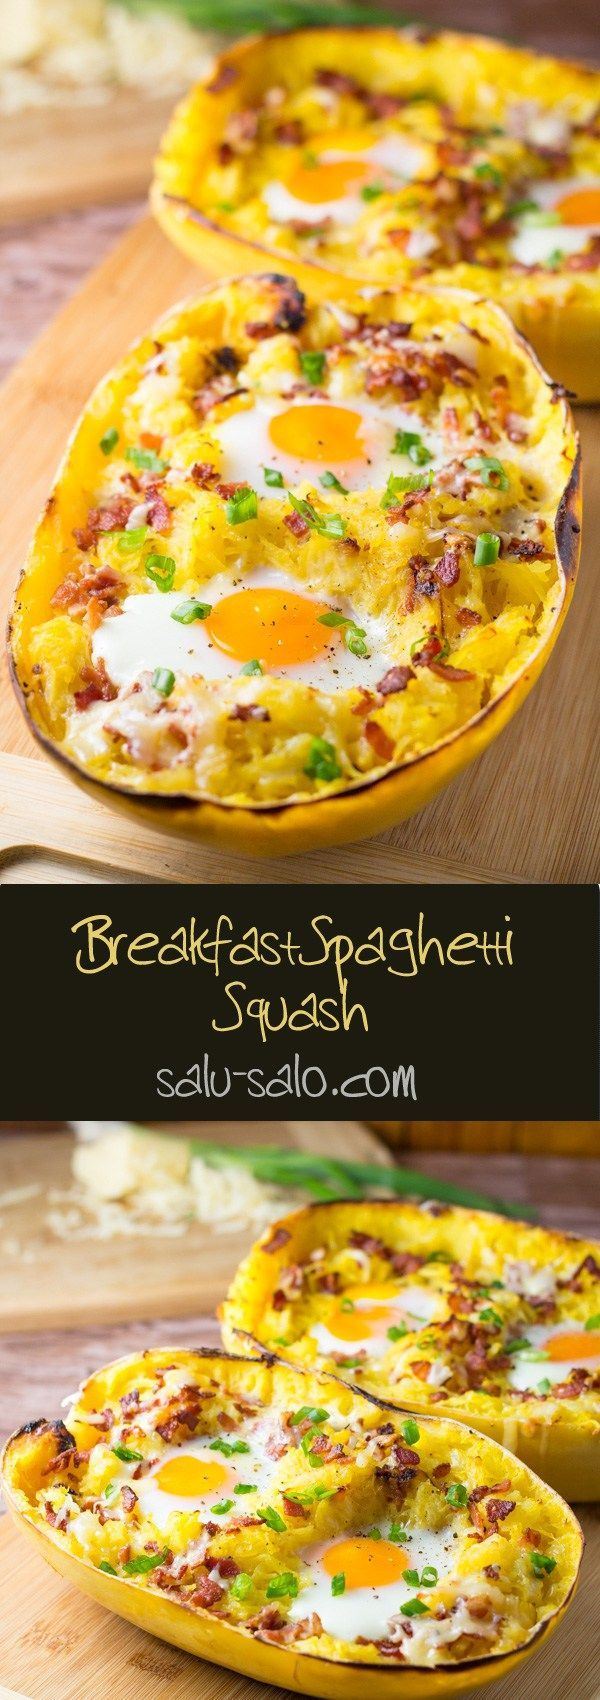 Breakfast Spaghetti Squash--take out the bacon, or replace with veg crumbles